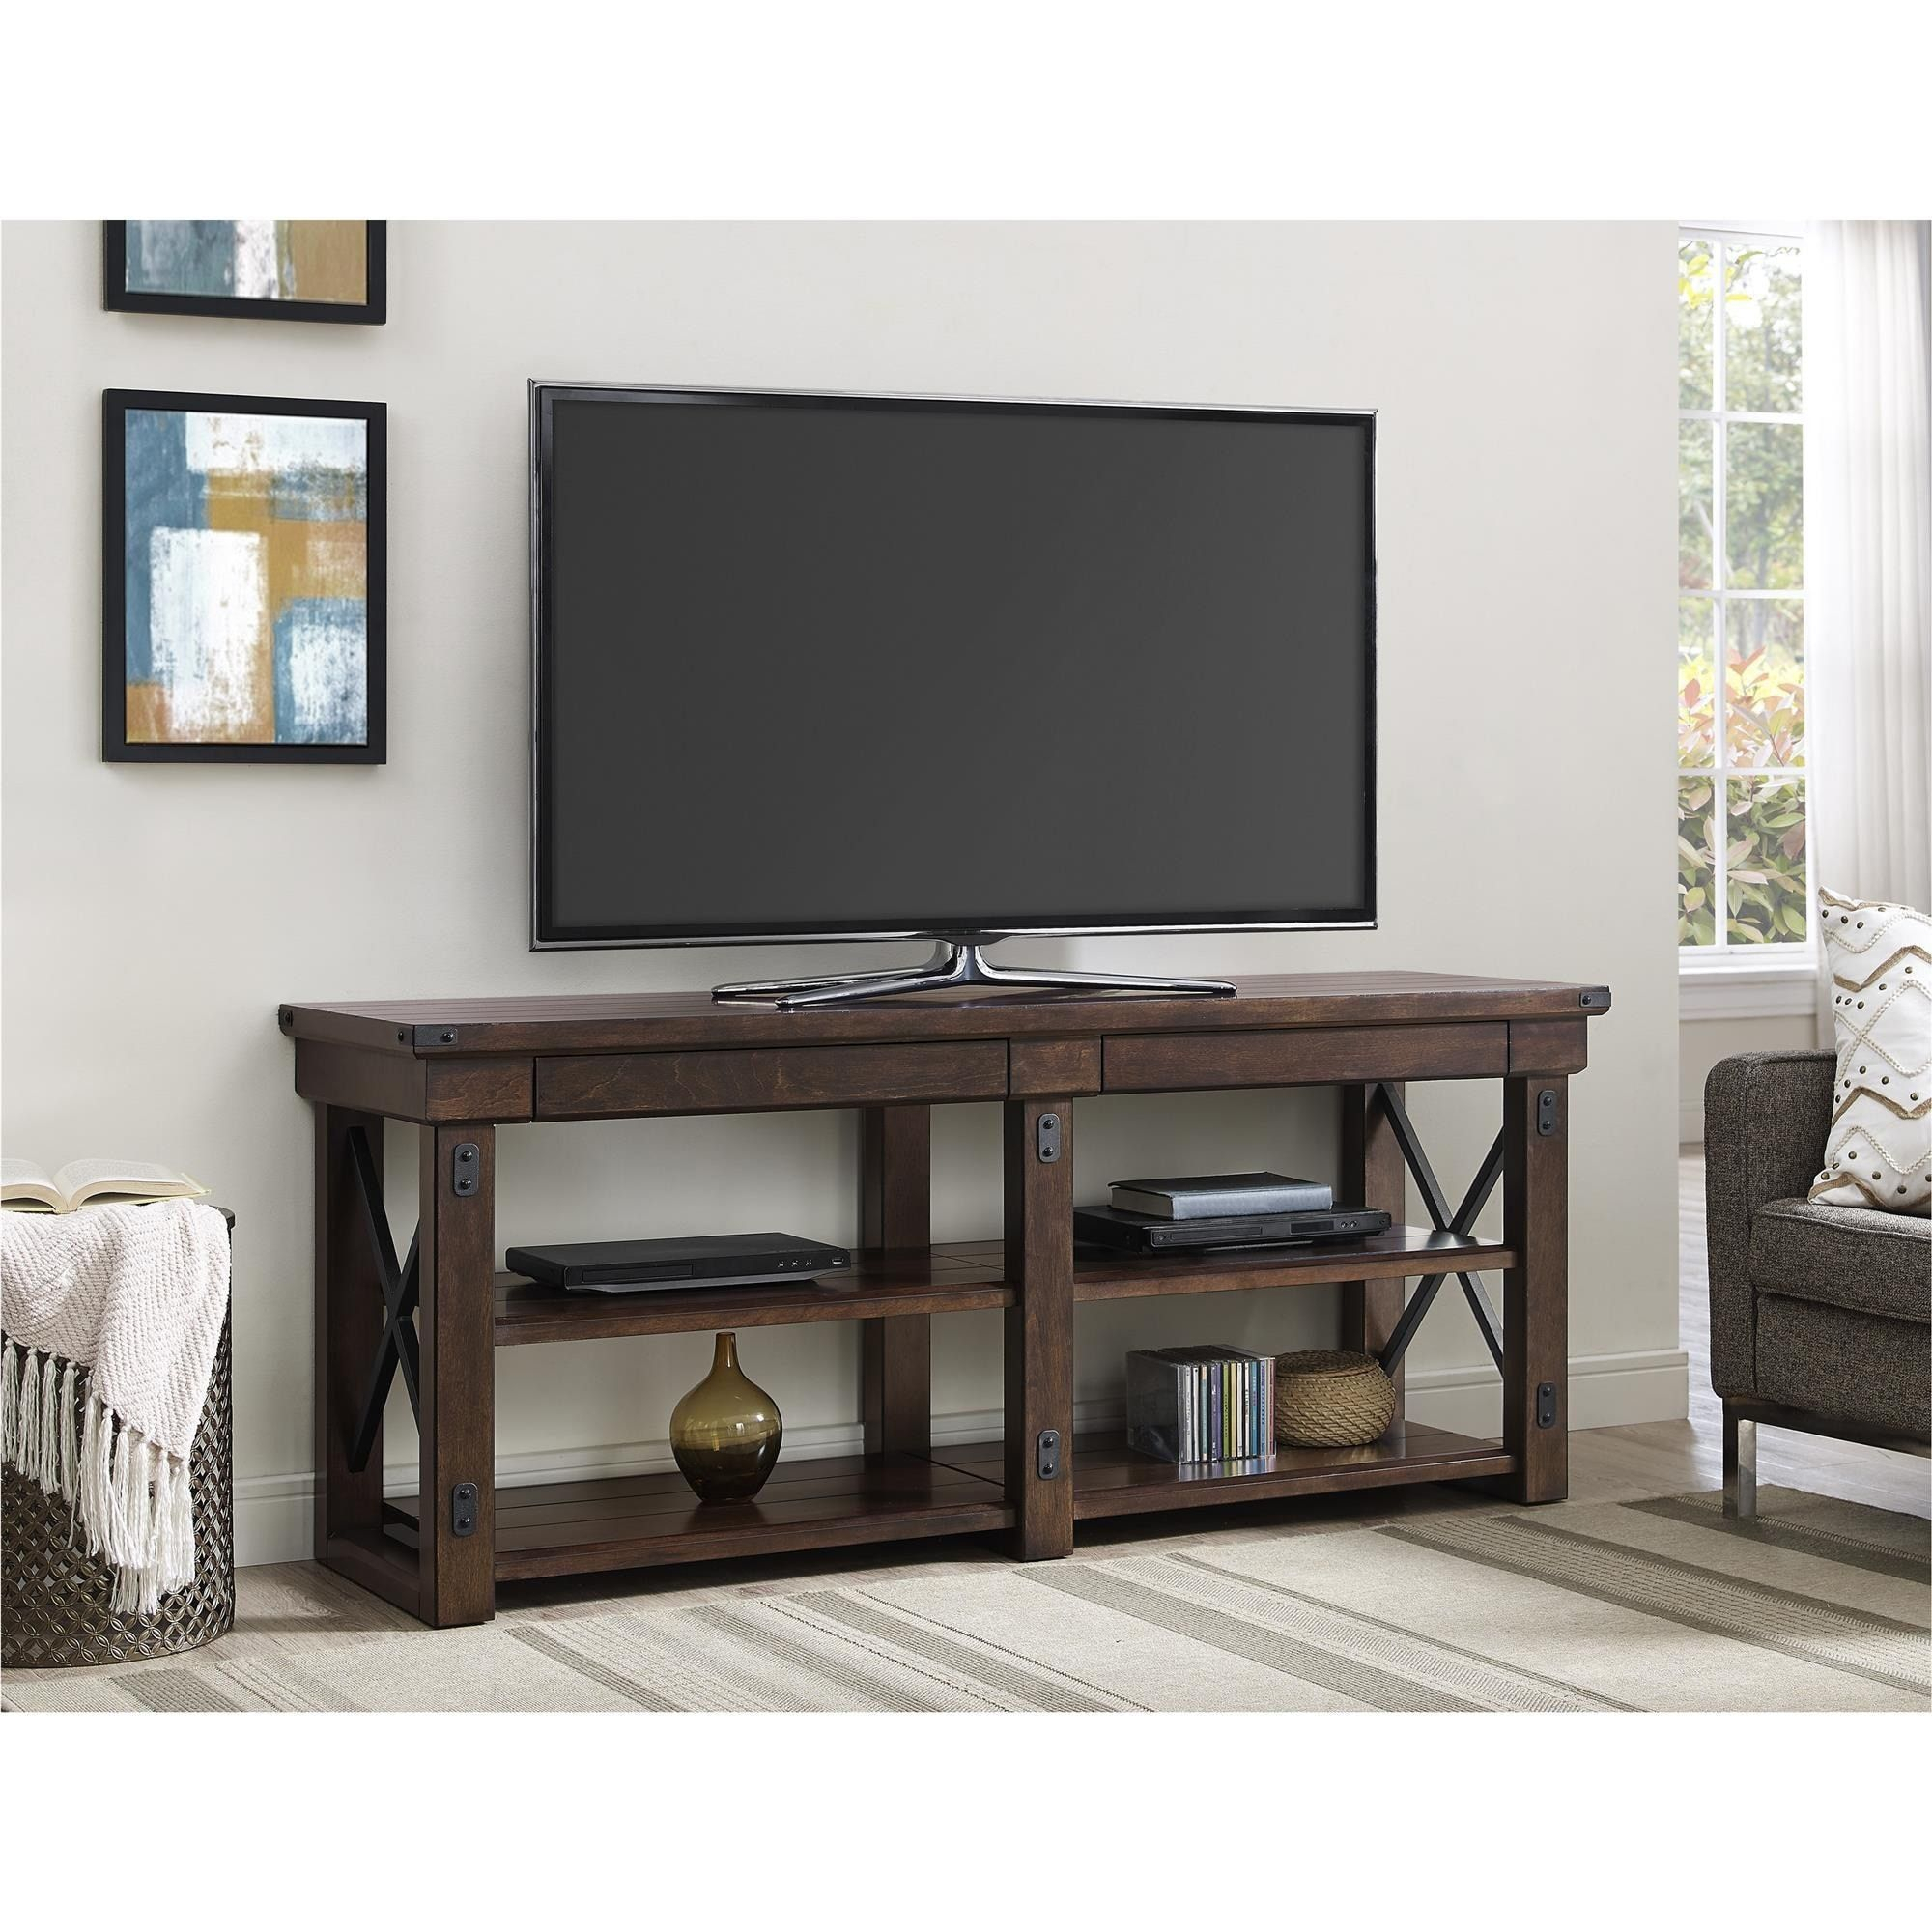 Ameriwood Home Wildwood Mahogany Veneer 65-Inch Tv Stand (65-Inch Tv within Oxford 60 Inch Tv Stands (Image 2 of 30)